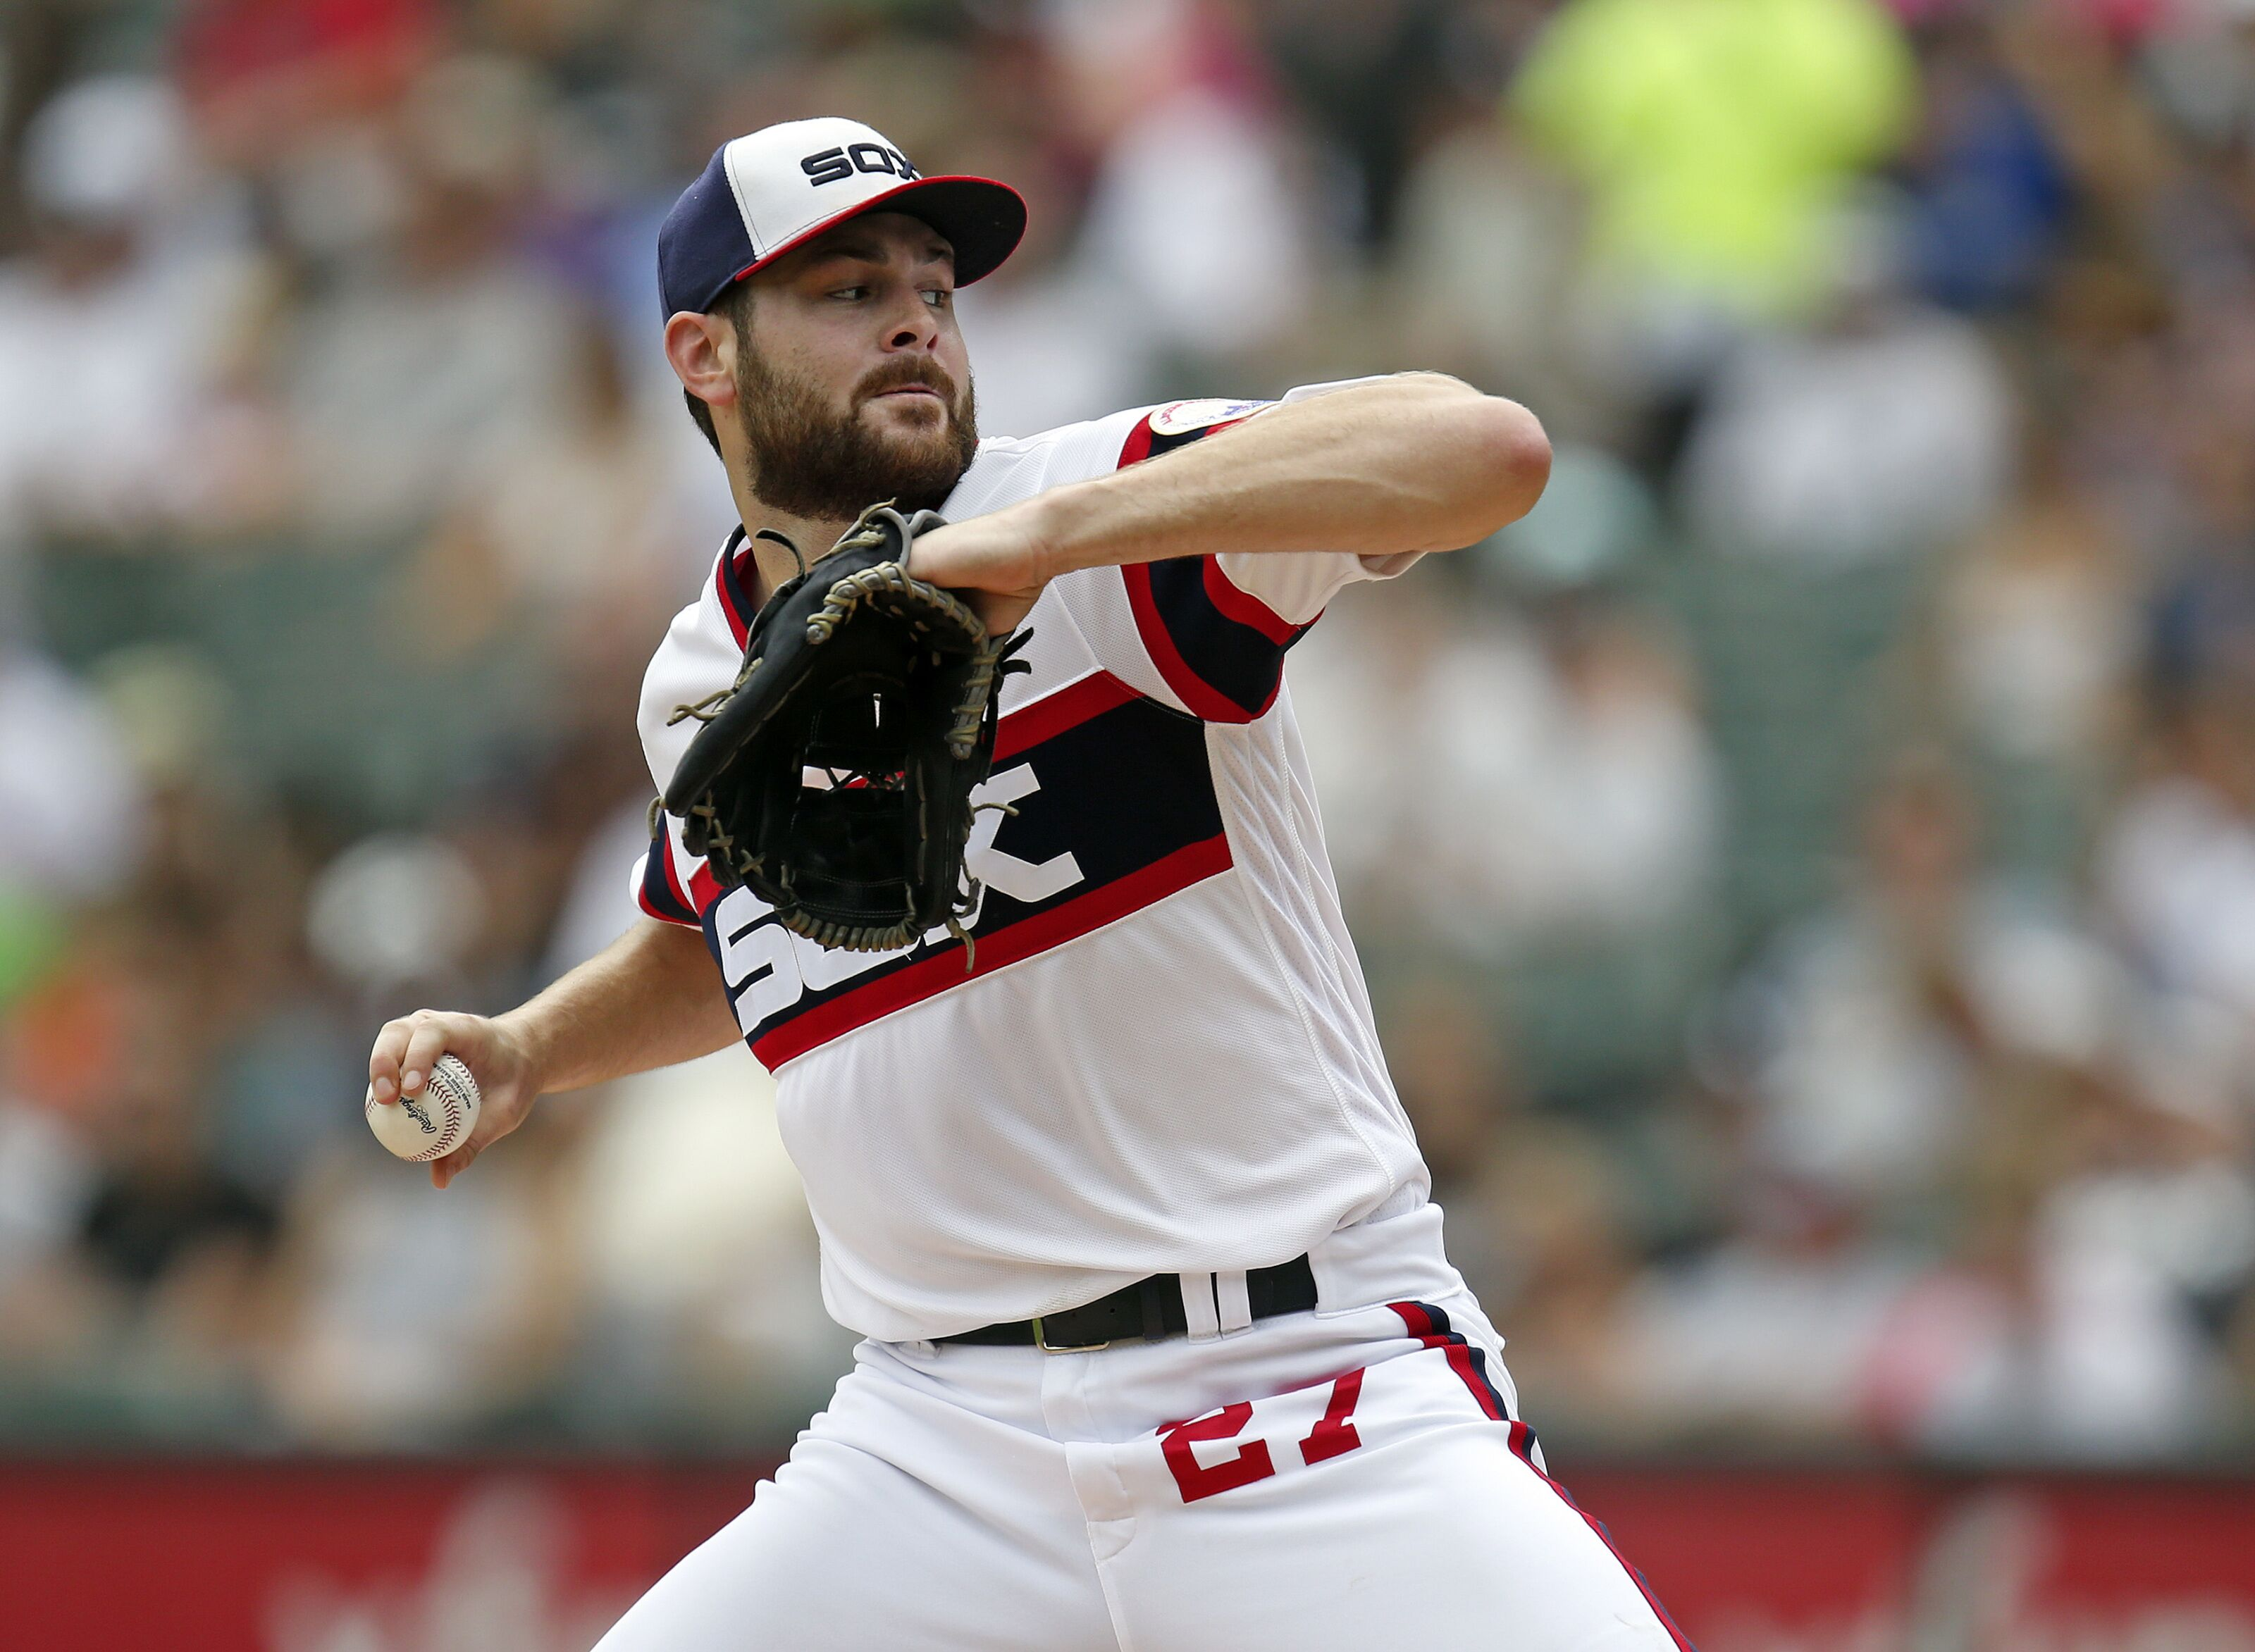 Chicago White Sox: Lucas Giolito is nominated for AL comeback player